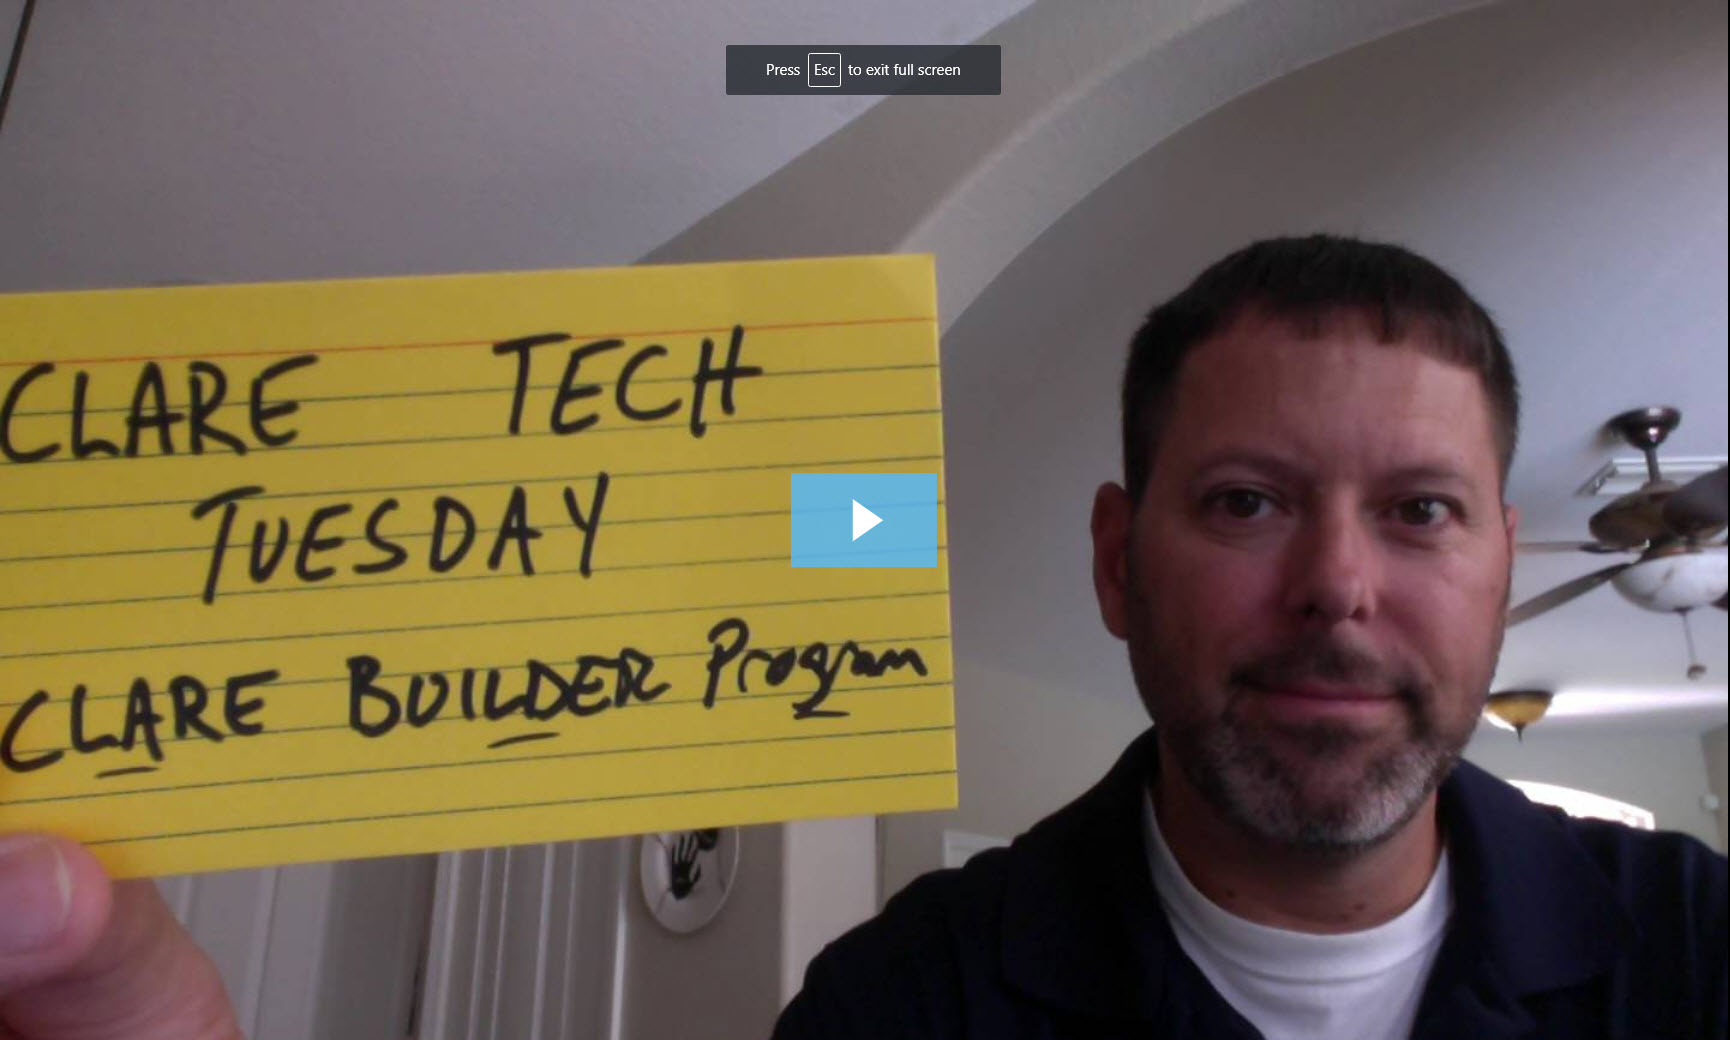 Clare Tech Tuesday: Clare Builder Program Overview